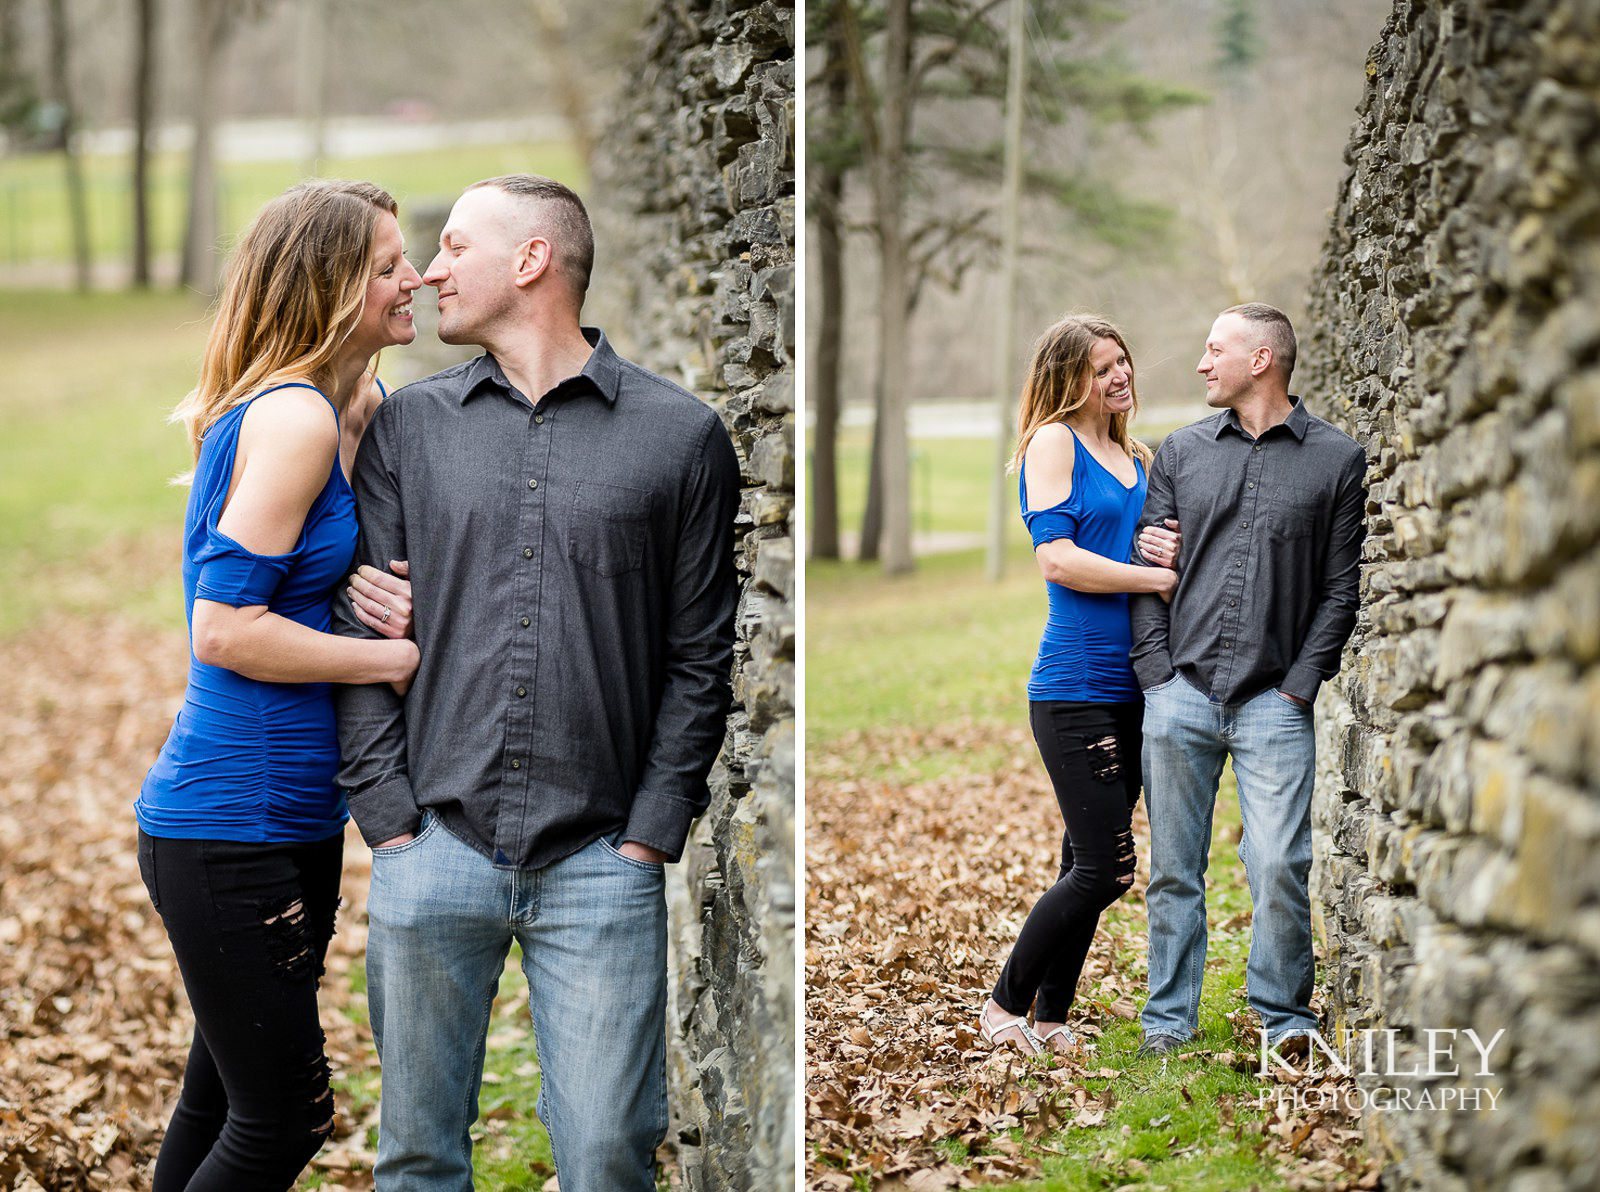 013 - Letchworth State Park engagement picture collage 5.jpg